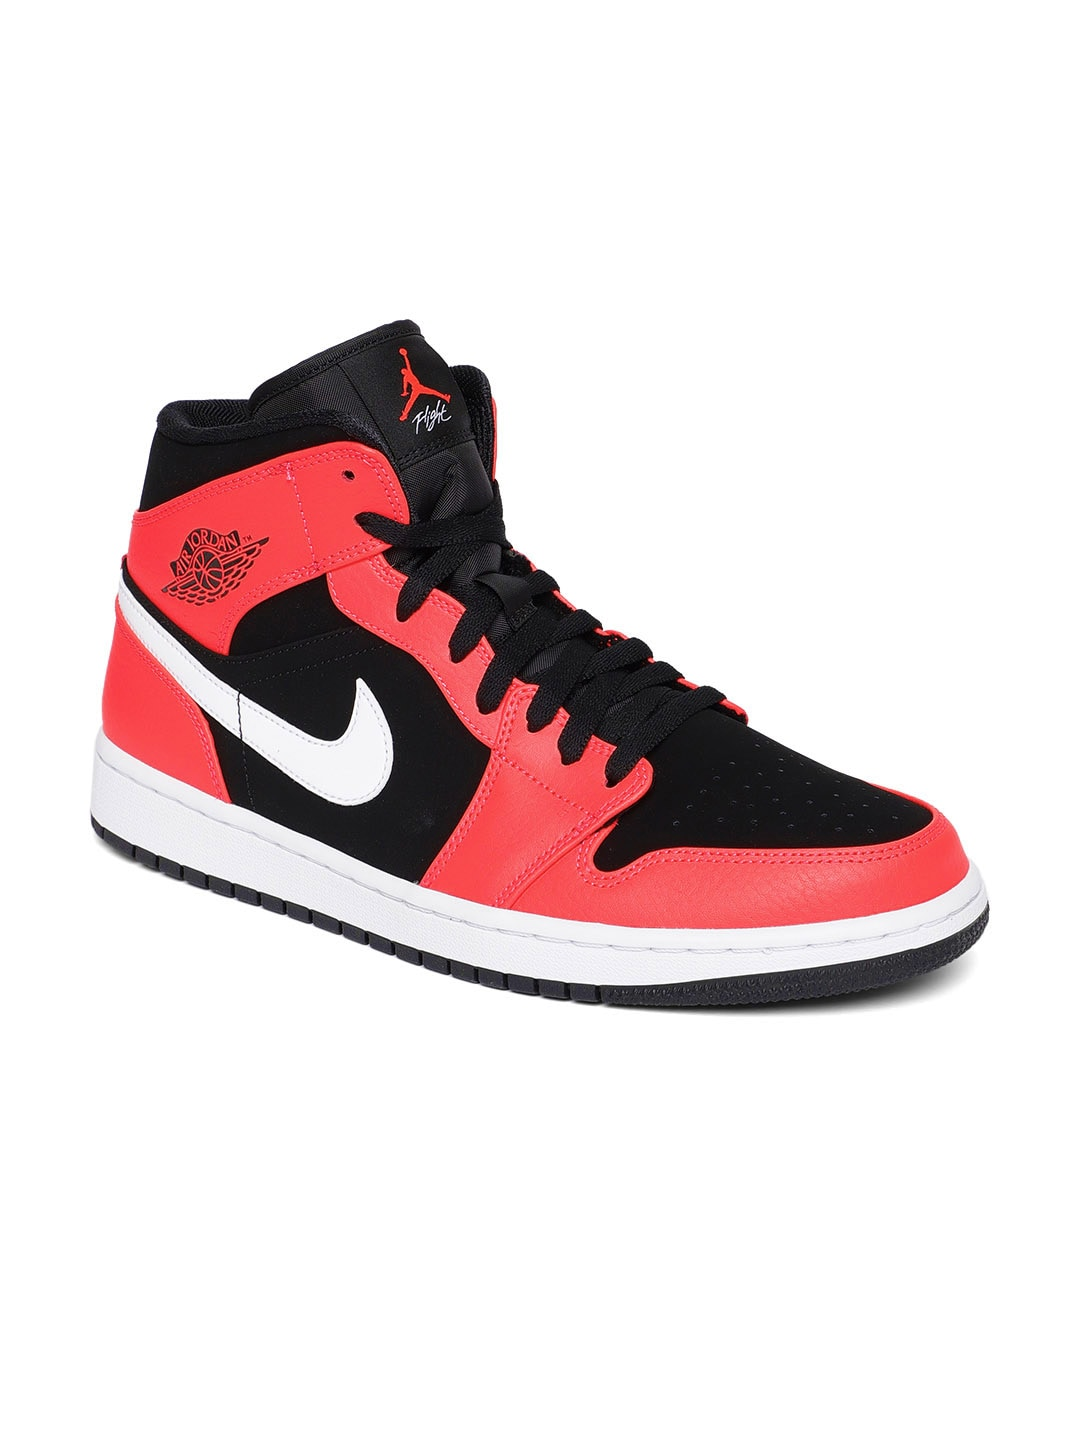 5cf55ca6ef71 Jordan Shoes - Buy Jordan Shoes For Men Online in India